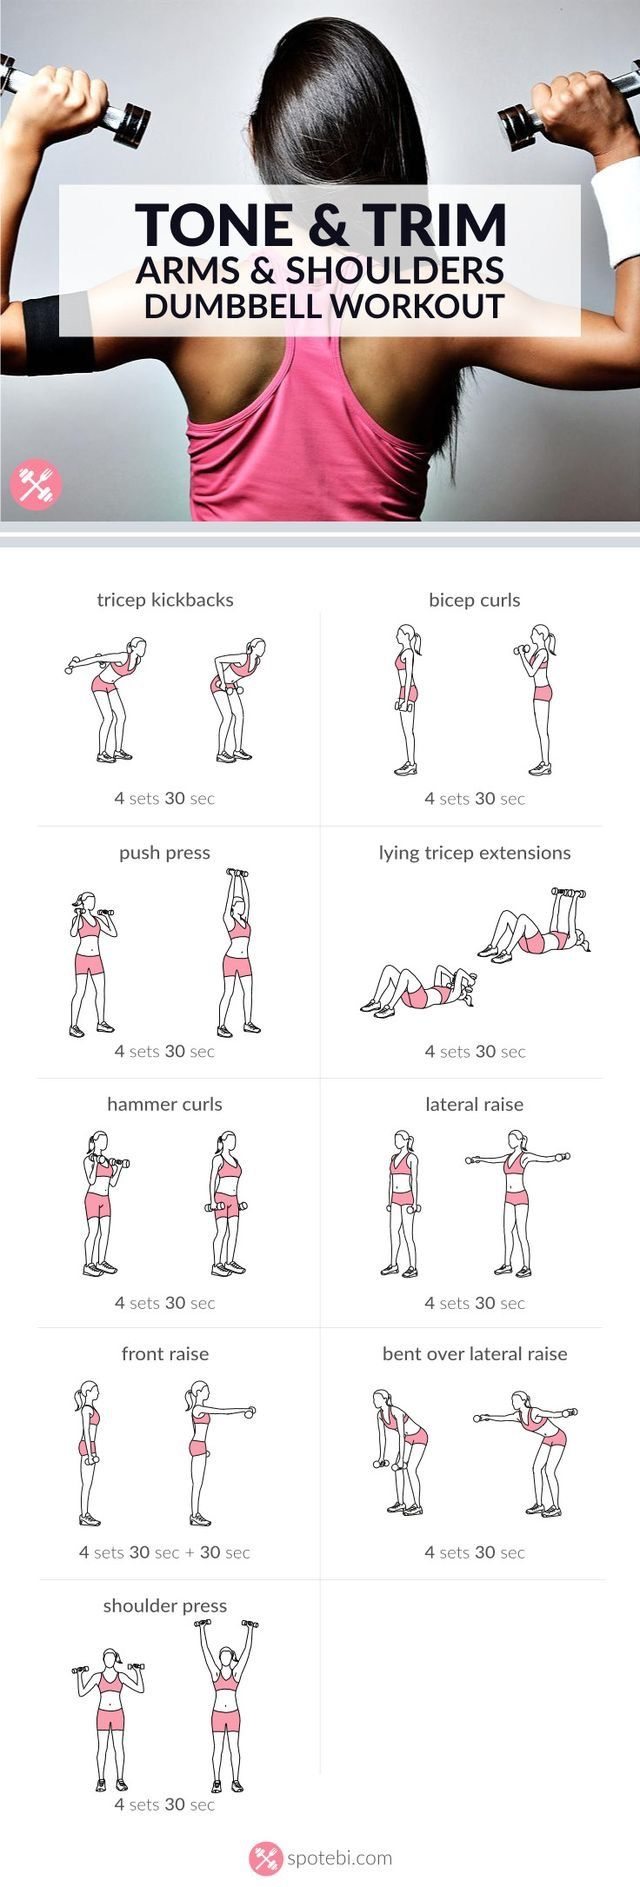 Tone and trim Arms & Shoulders Dumbbell Workout